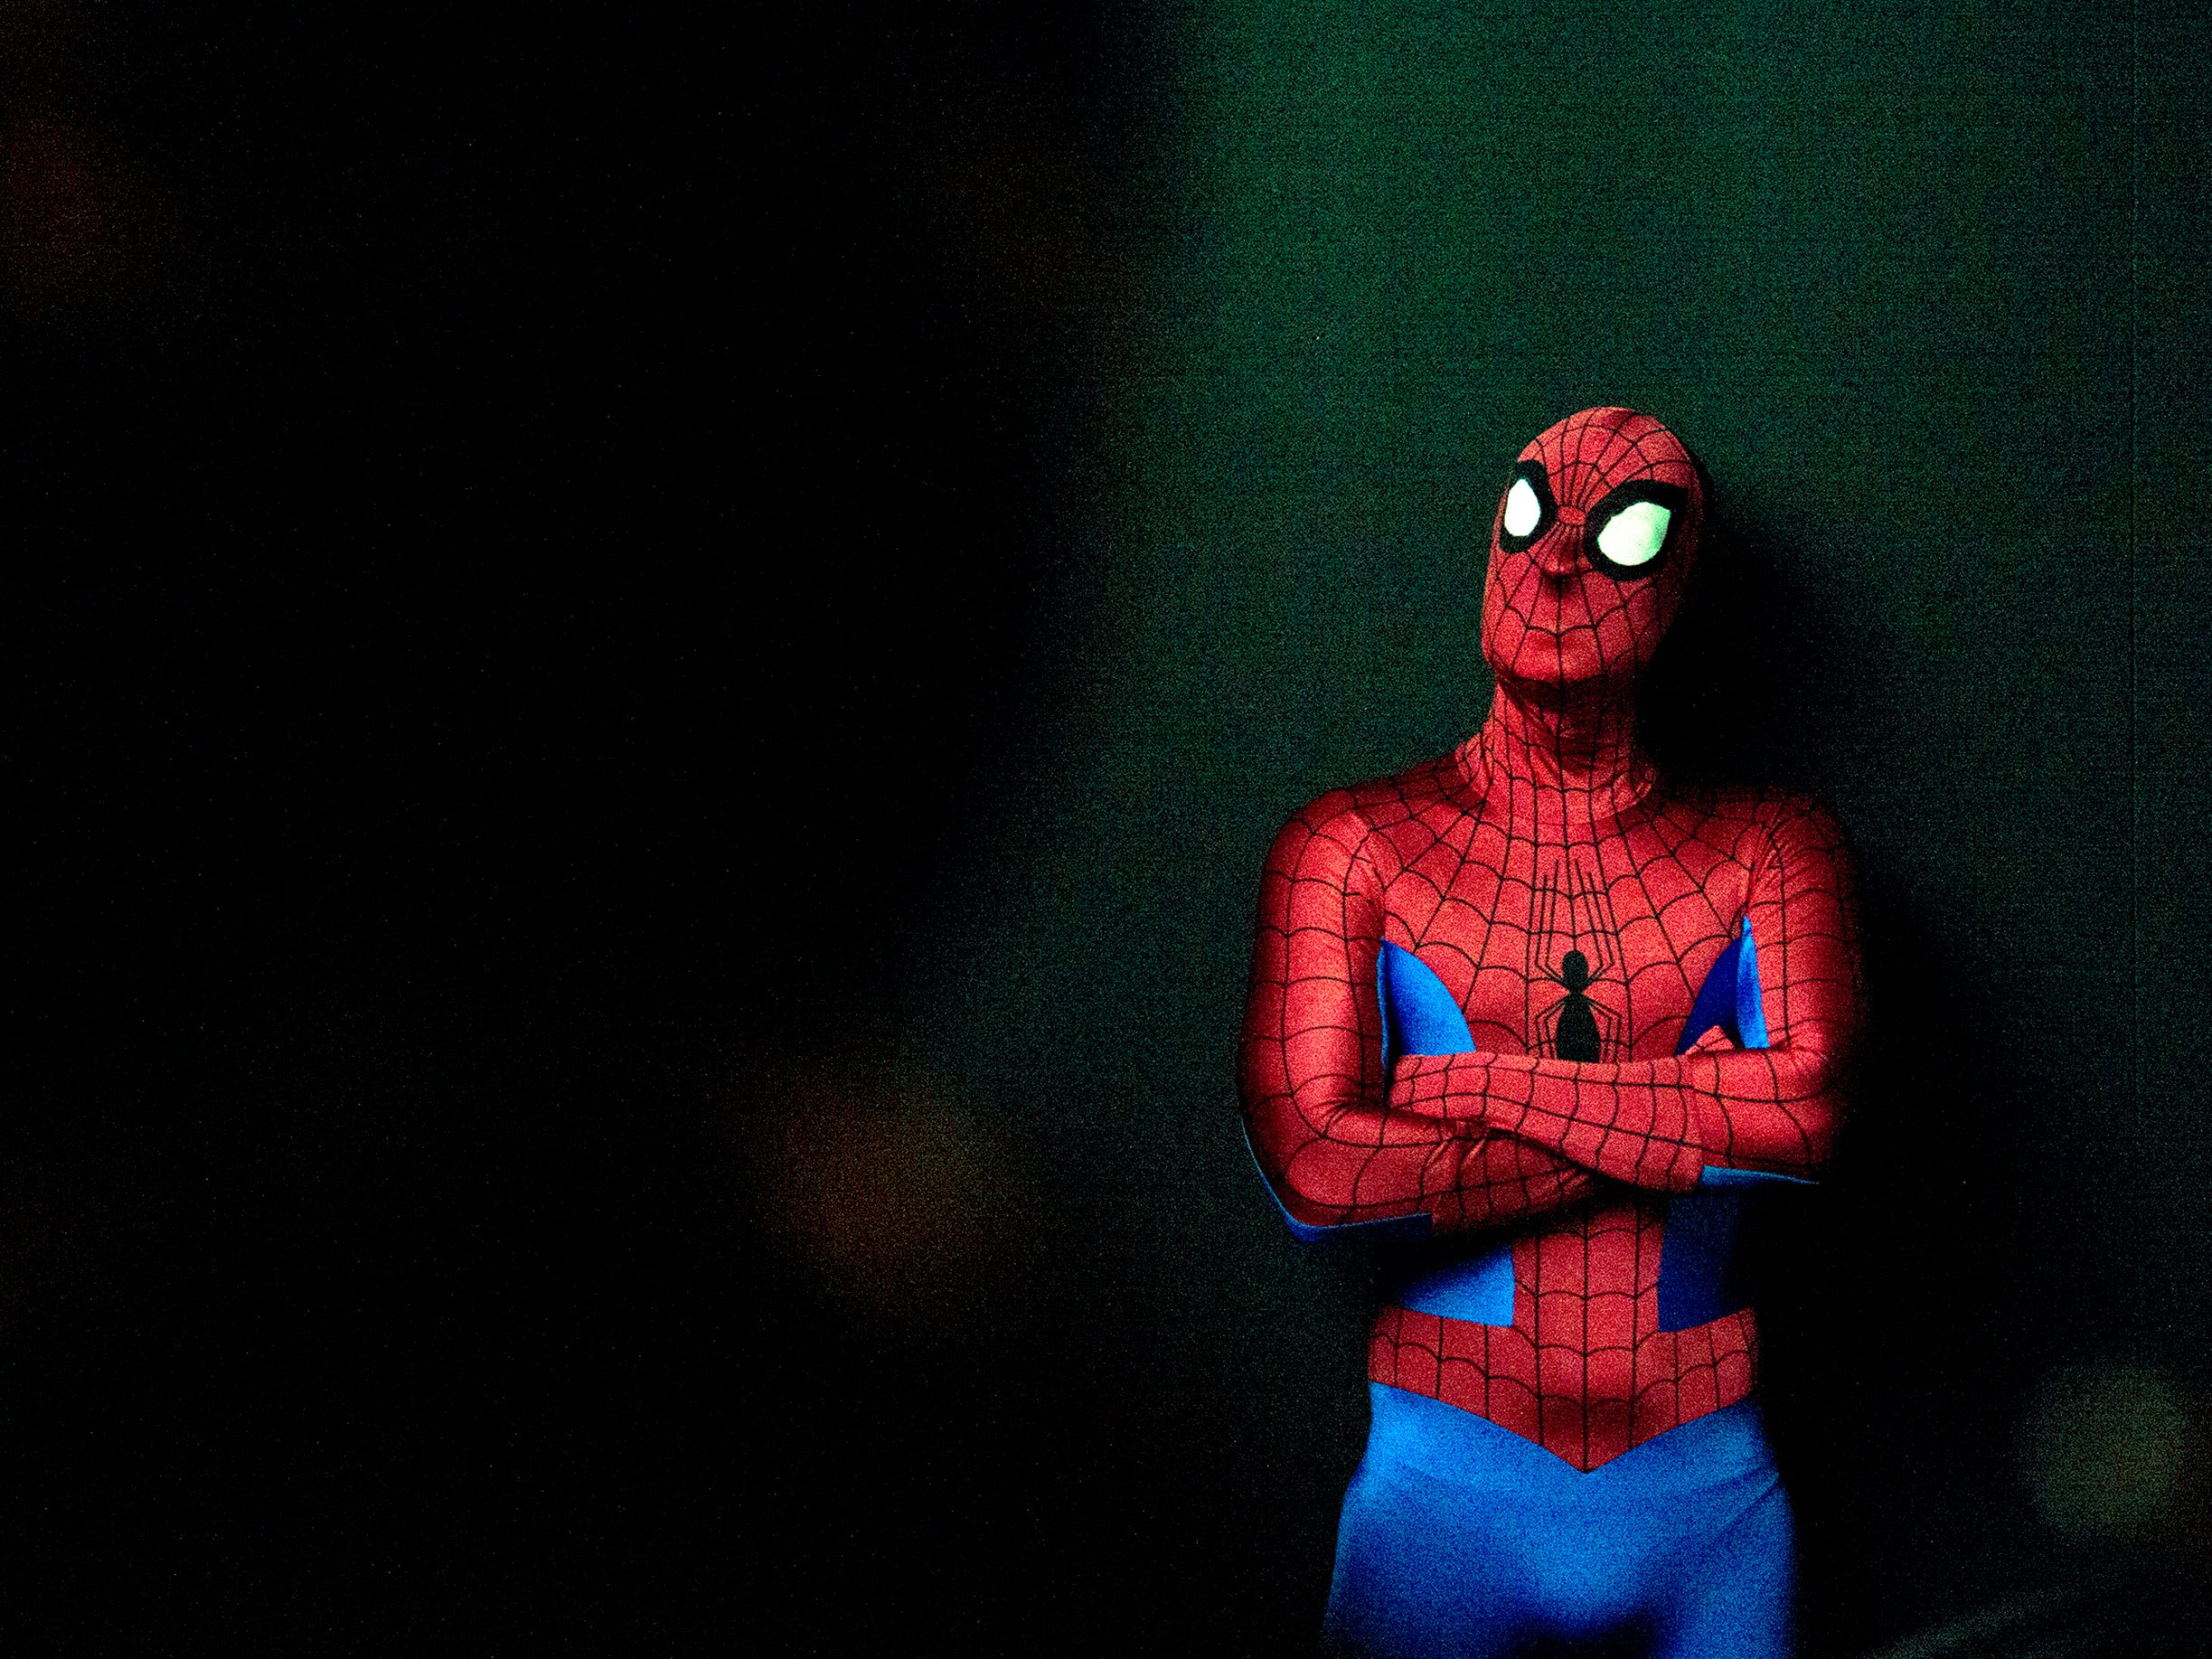 Spider-Man watches a presentation during a press conference revealing the new 'Marvel: Universe of Super Heroes' installation at the Franklin Institute Friday, April 12, 2019 in Philadelphia, Pa. The exhibit runs from April 13-September 2.